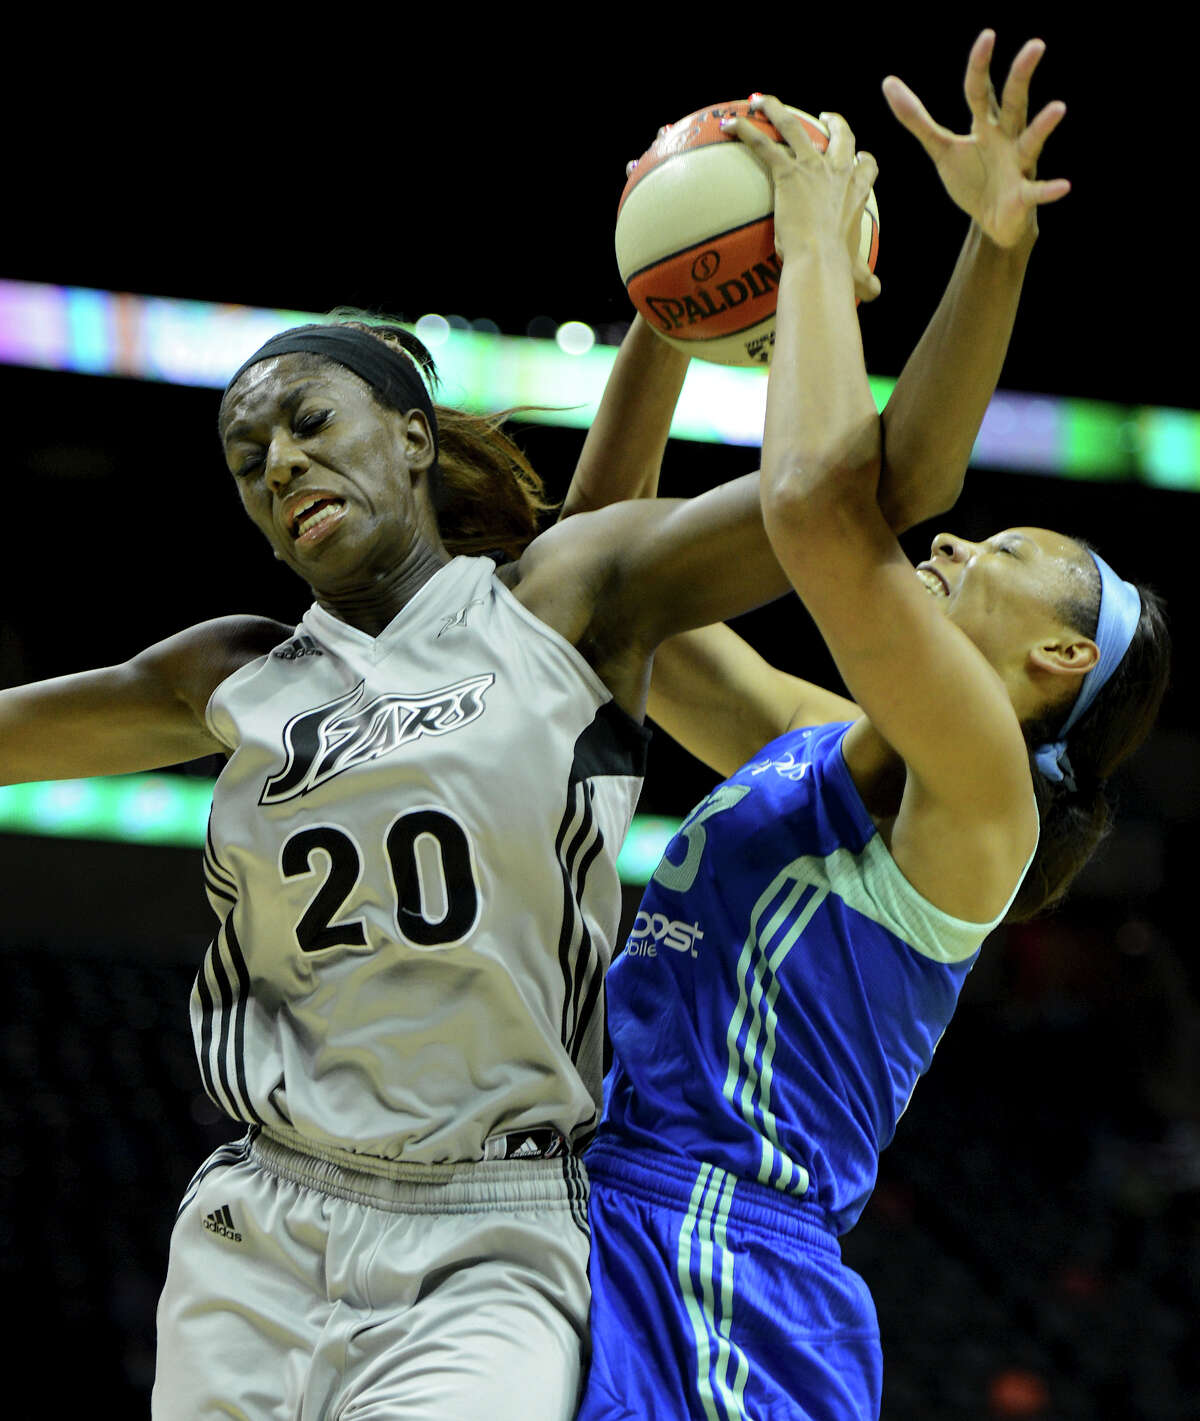 The Silver Stars' Shameka Christon (20) gets tangled up with New York's Plenette Pierson (right) while trying to collect a rebound during a WNBA game between the San Antonio Silver Stars and the New York Liberty on Tuesday, Sept. 18, 2012, at the AT&T Center.